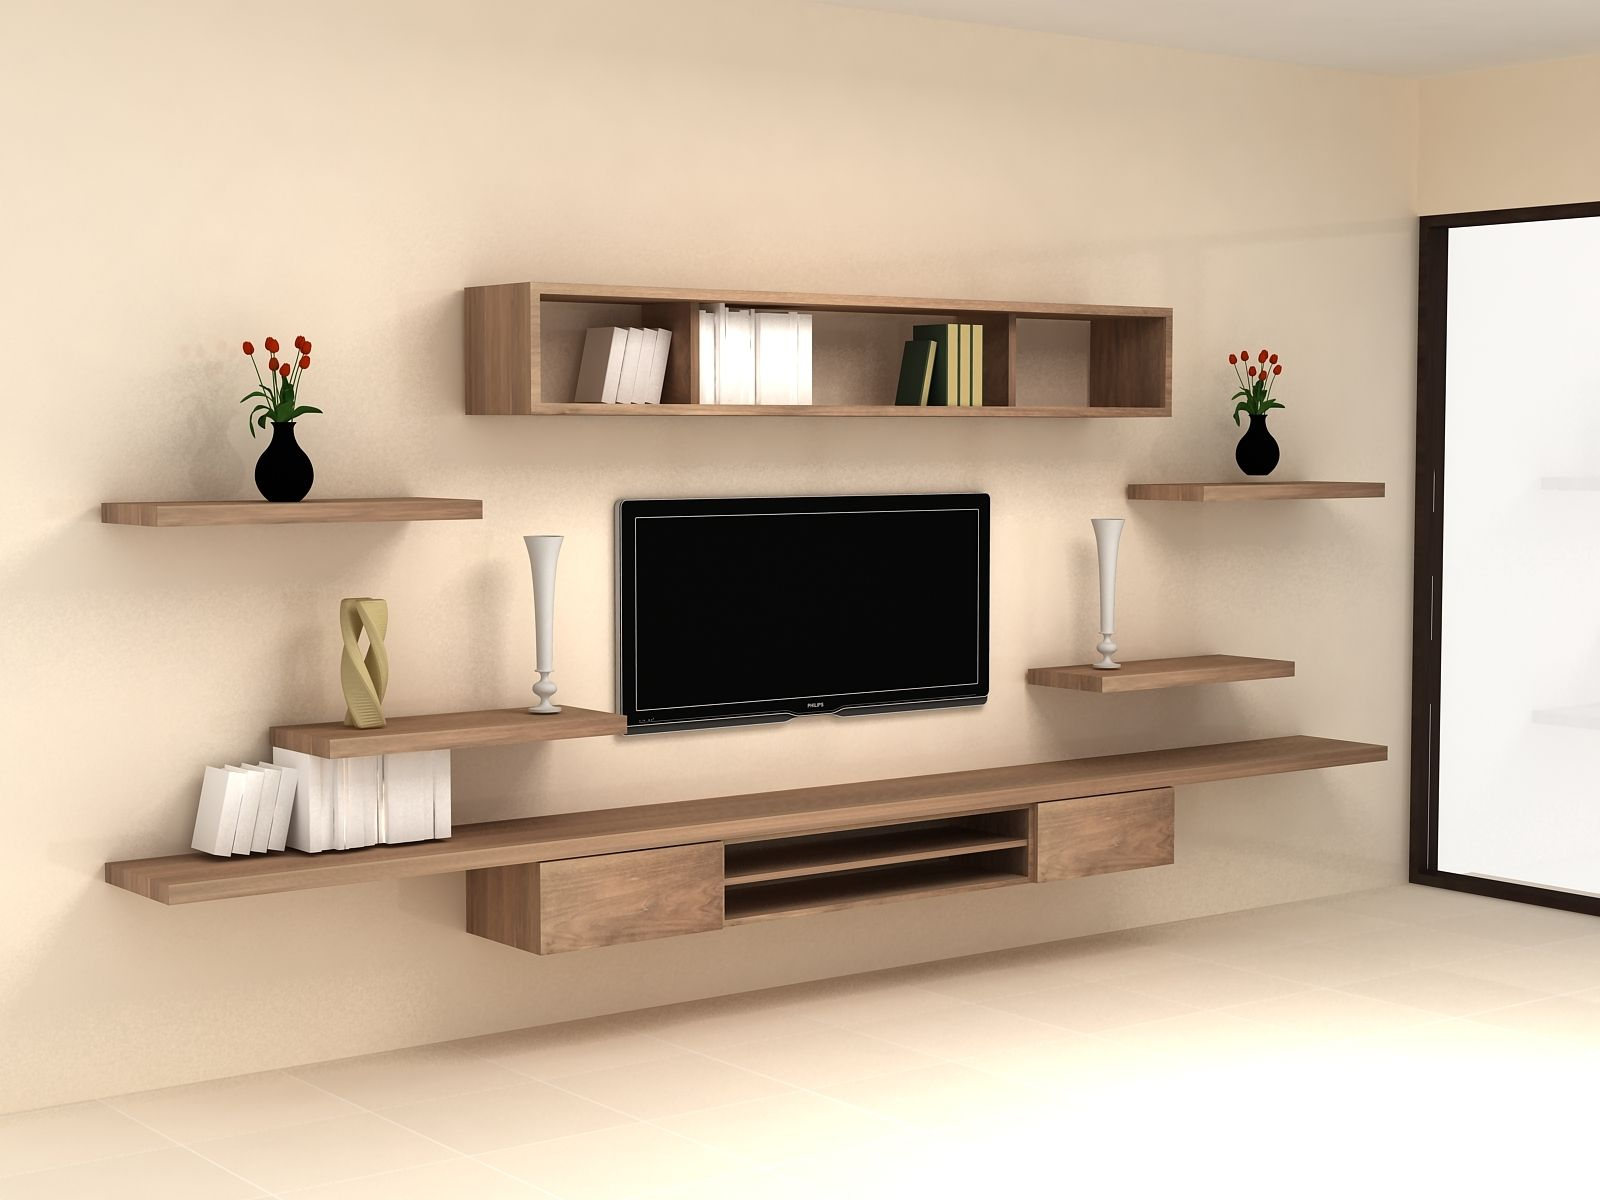 Design Tv Rack Cool Tv Rack With Tv Rack With Design Tv Rack Wall Tv Cabinet Ideas Mobila In 2019 Muebles Centro De